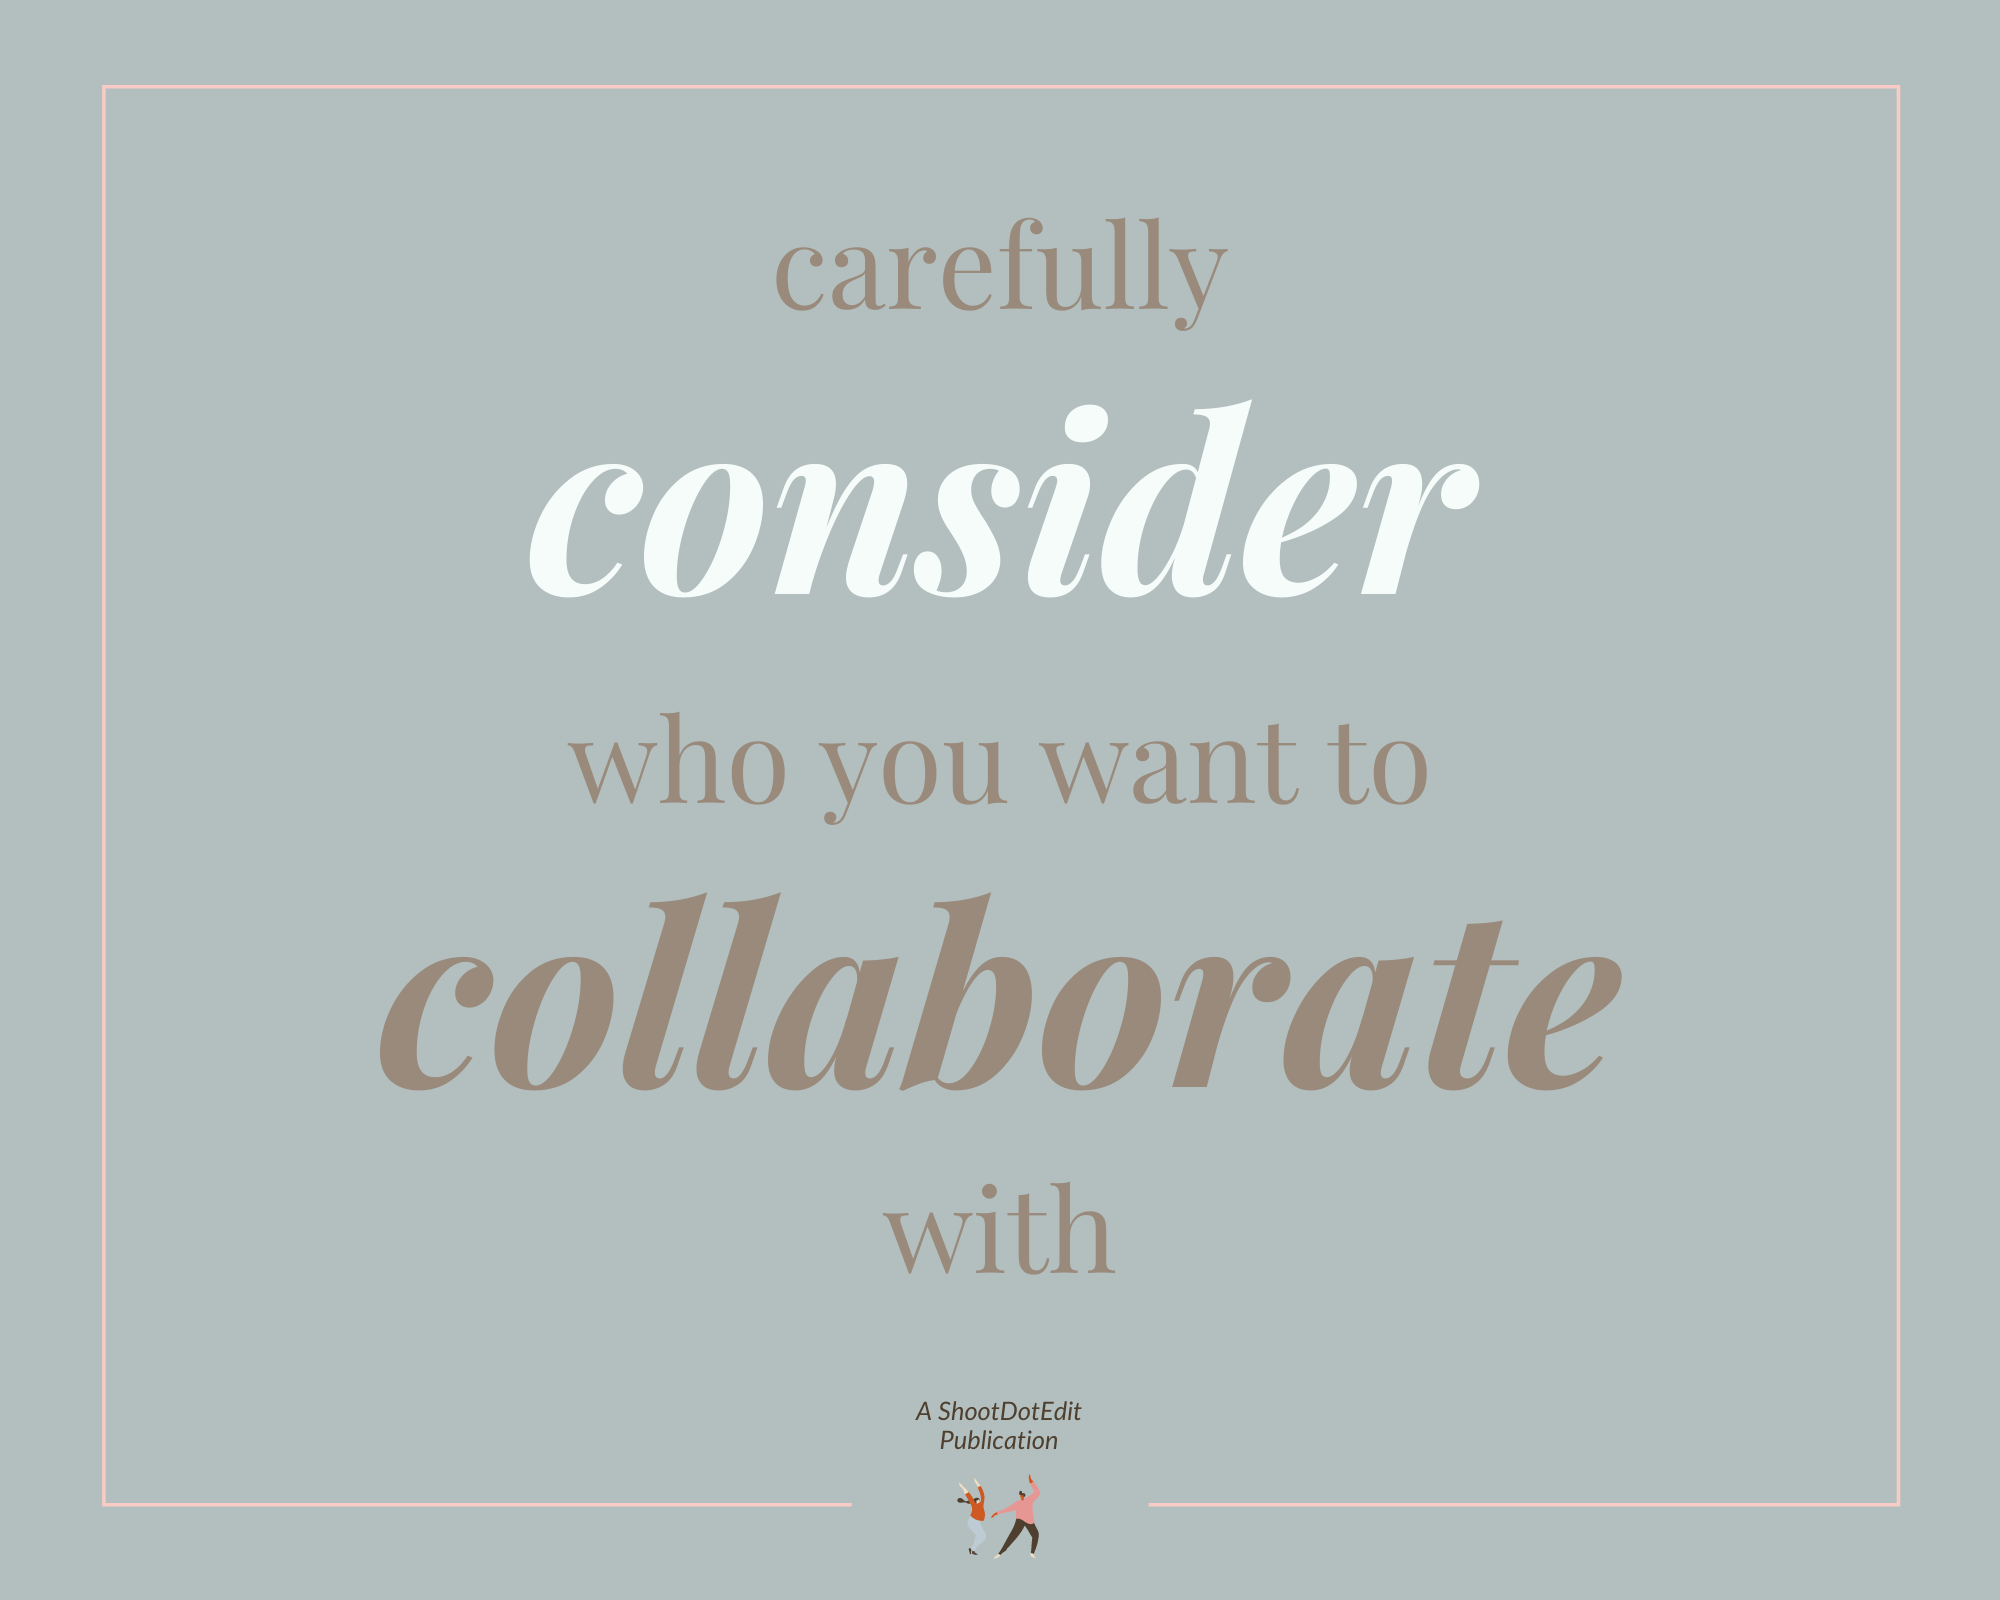 Infographic stating carefully consider who you want to collaborate with